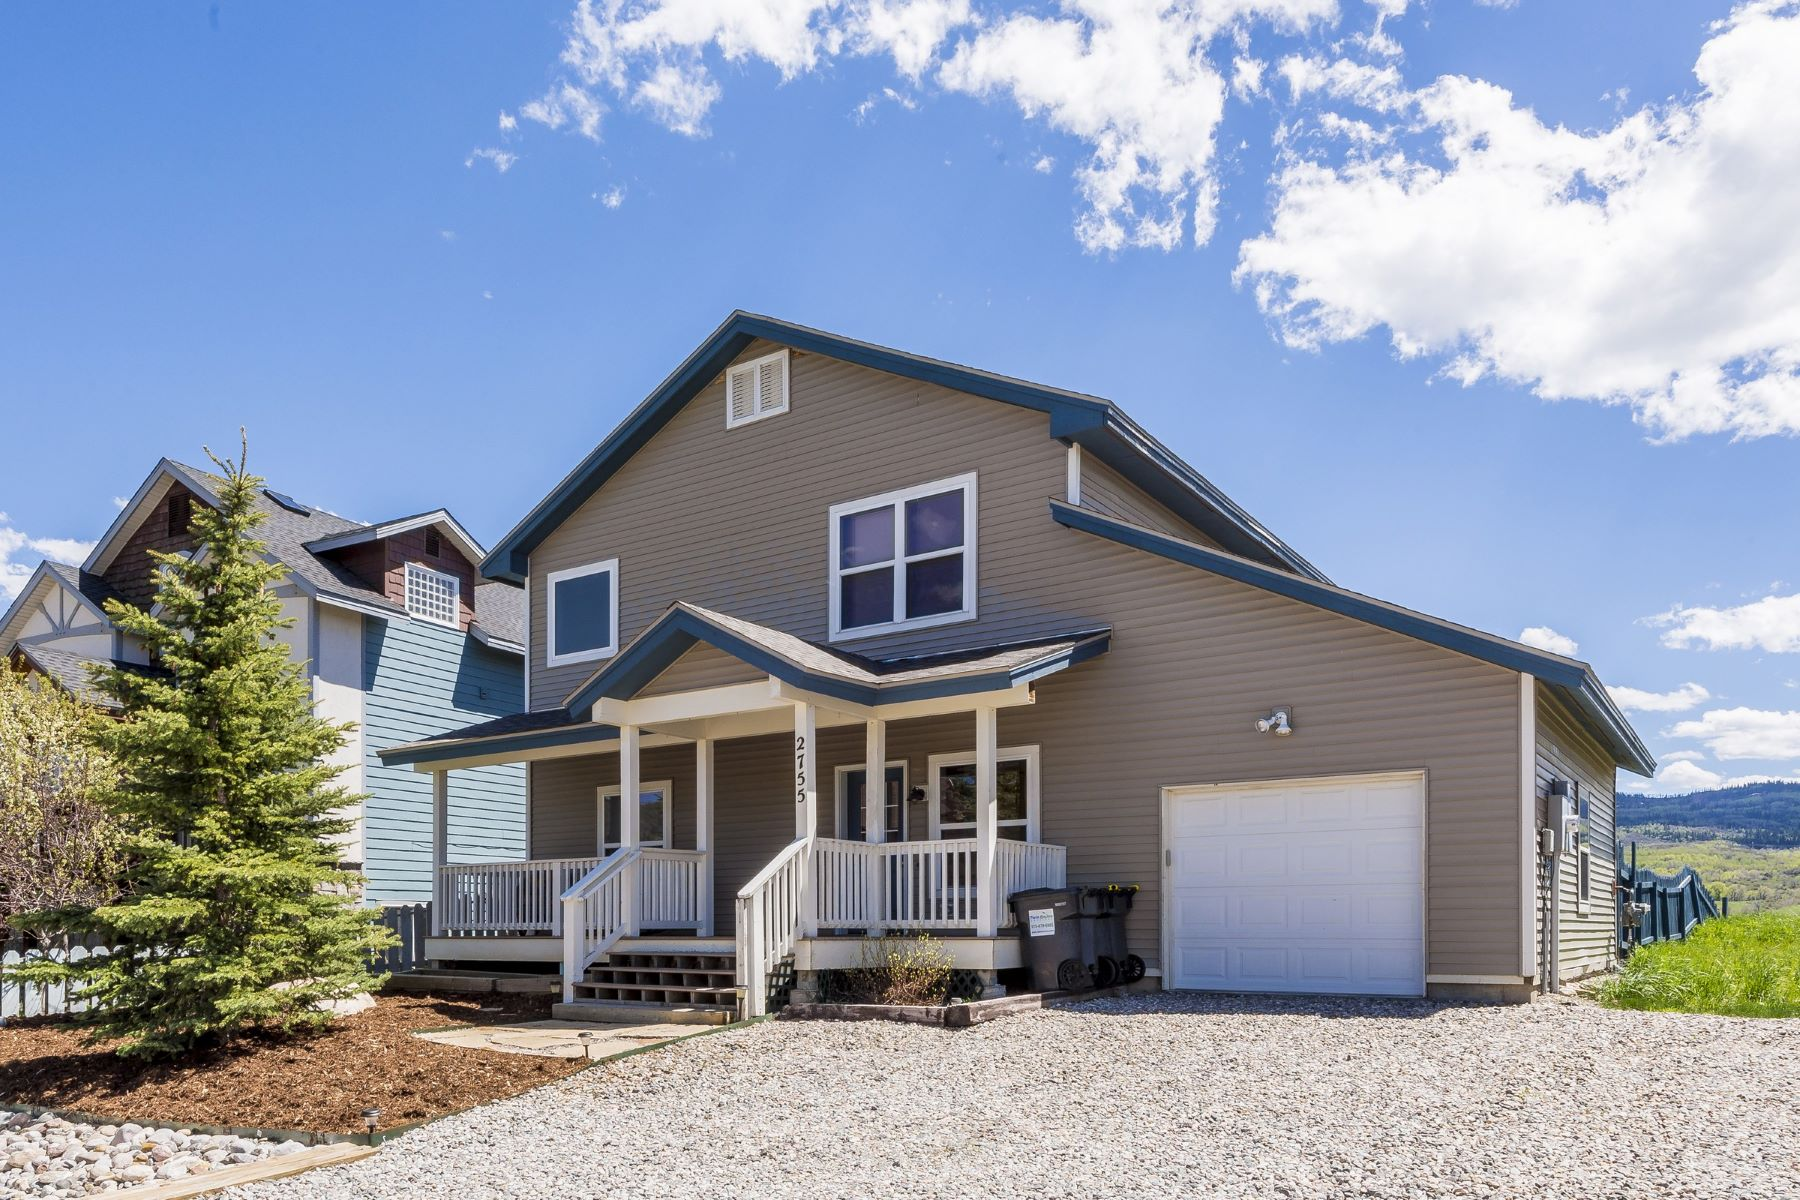 Single Family Home for Sale at West End Home with Big Views 2755 Abbey Road Steamboat Springs, Colorado 80487 United States